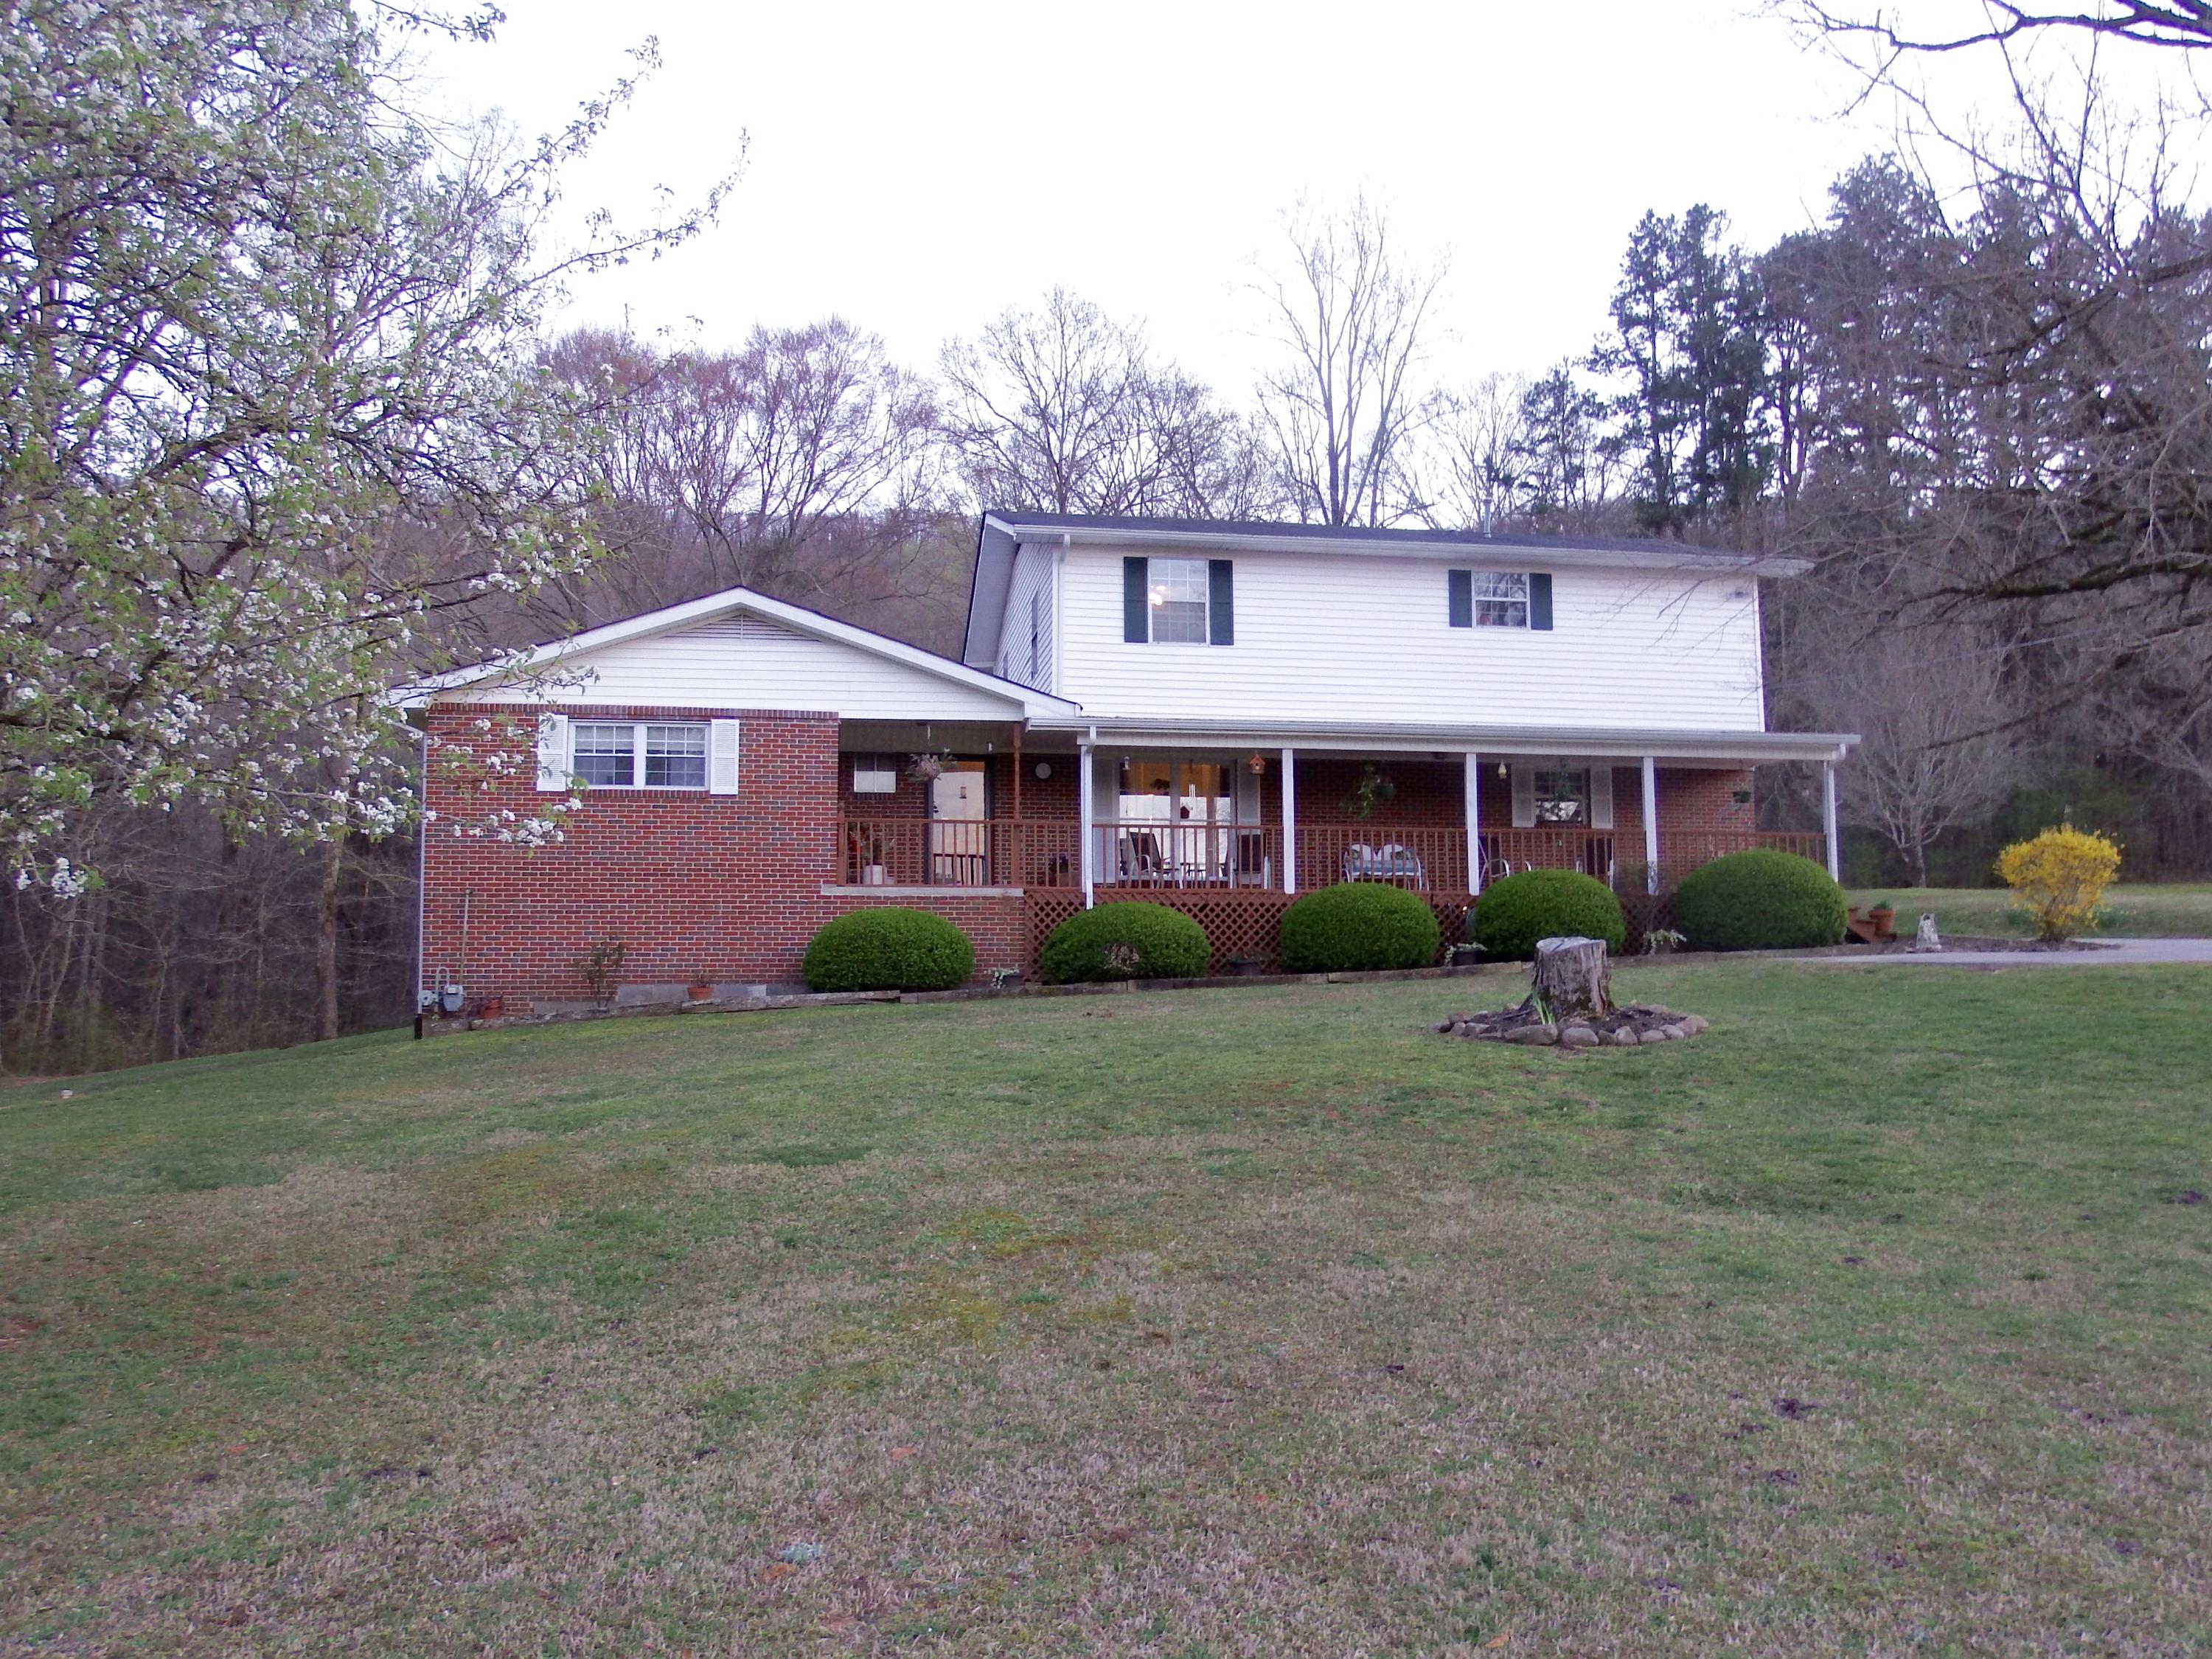 1975 Sweetens Cove Rd, South Pittsburg, TN 37380